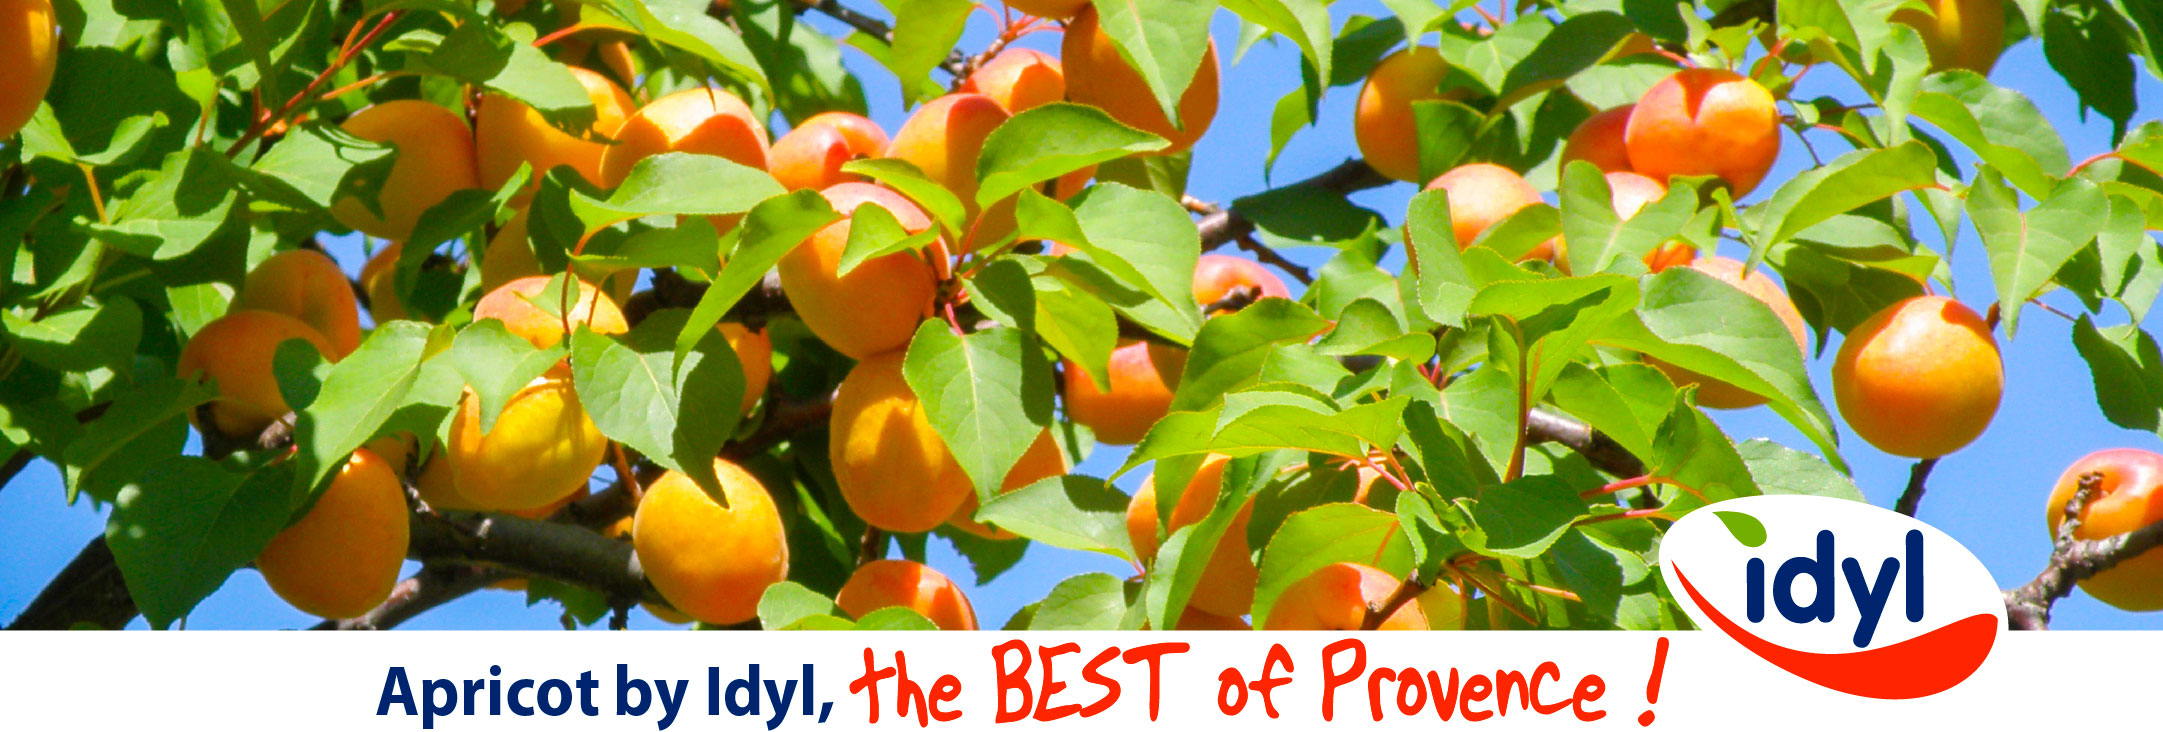 Idyl Apricot by idyl the BEST of Provence